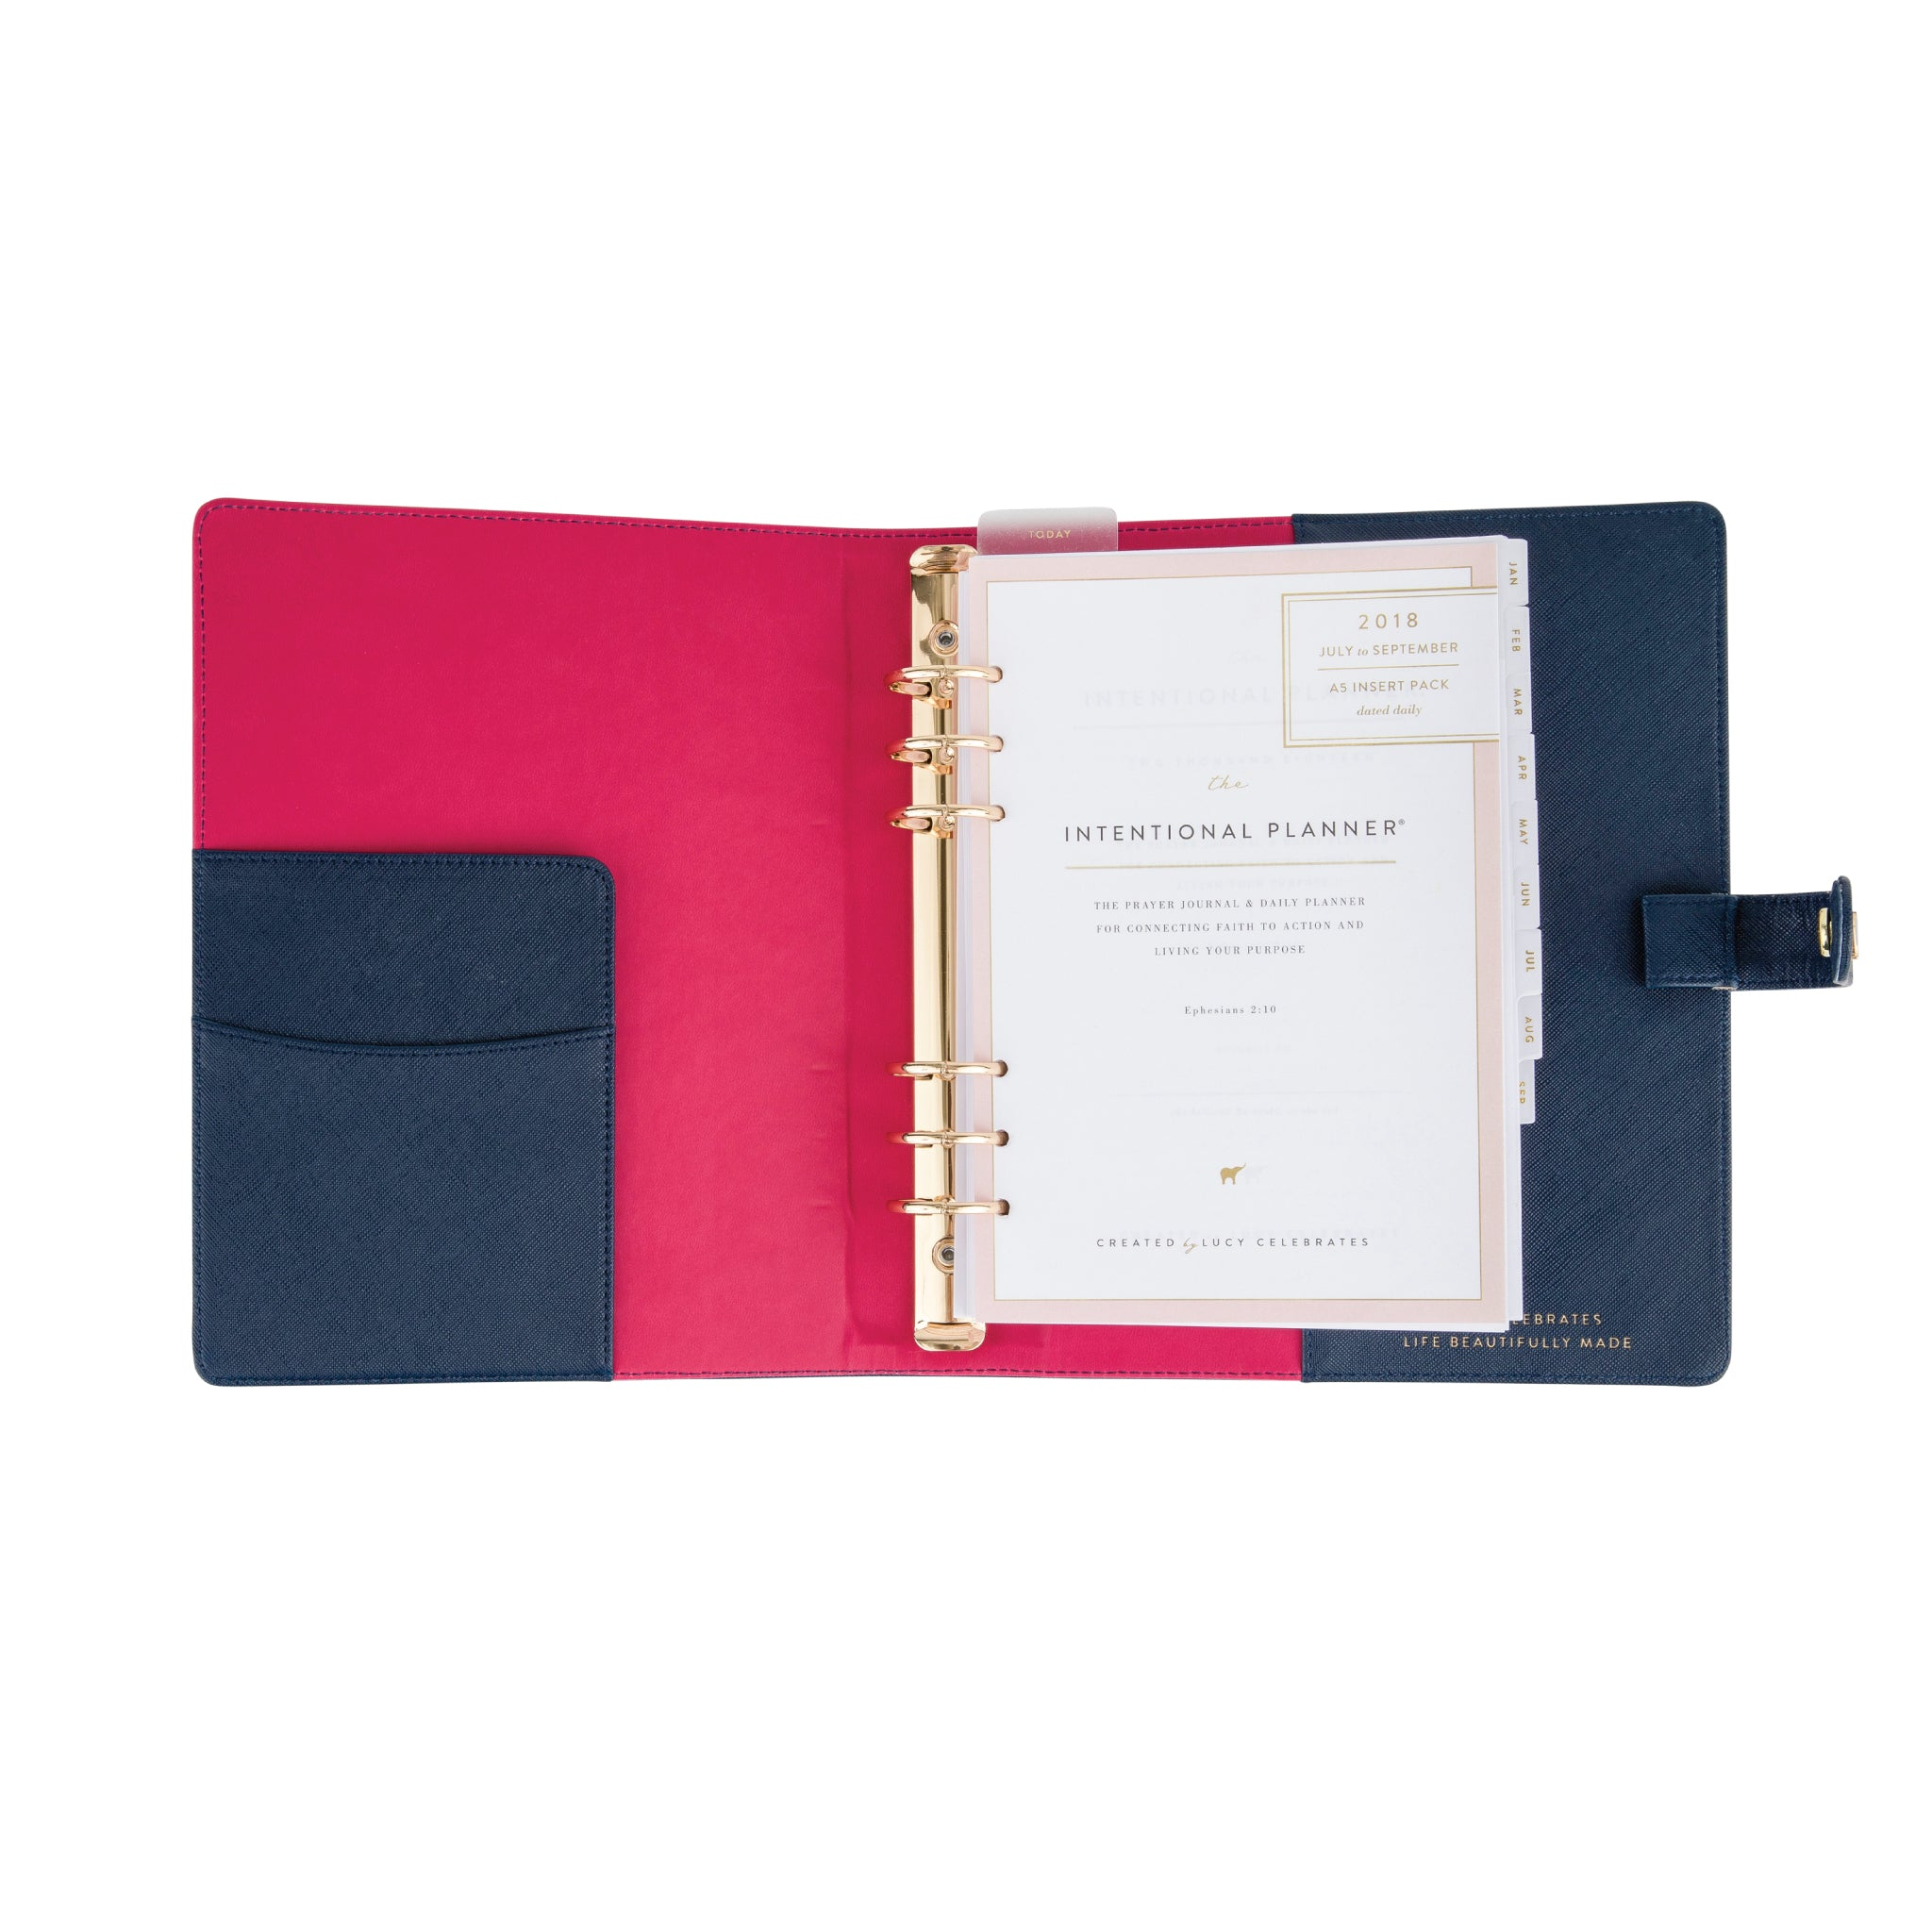 2019 Intentional Planner® Set, Navy Leatherette Binder